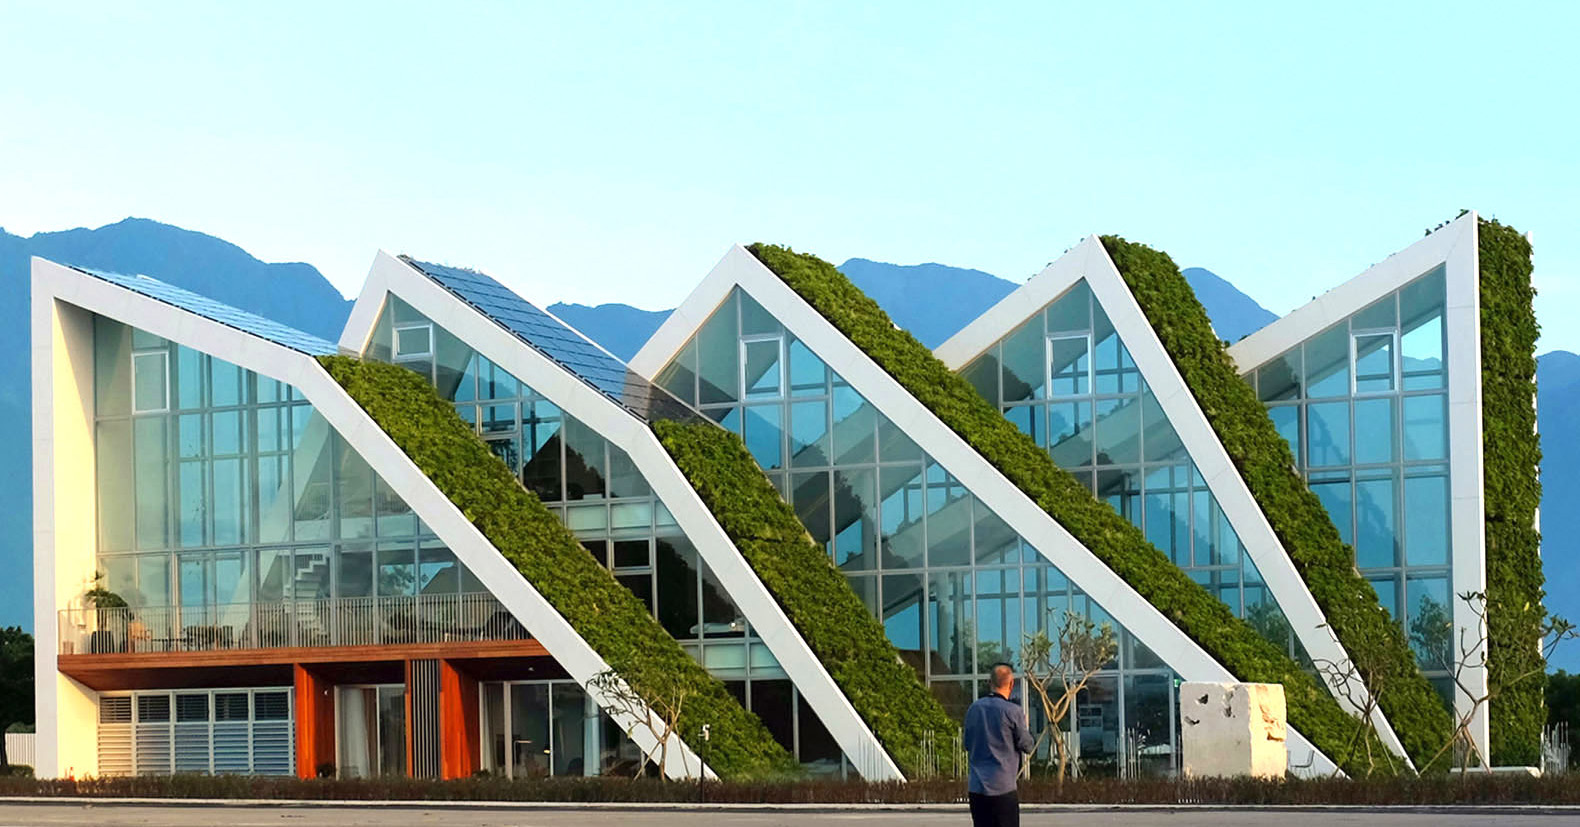 BIG Completes Solar Powered Holiday House In Taiwan With A Jagged Green Roof